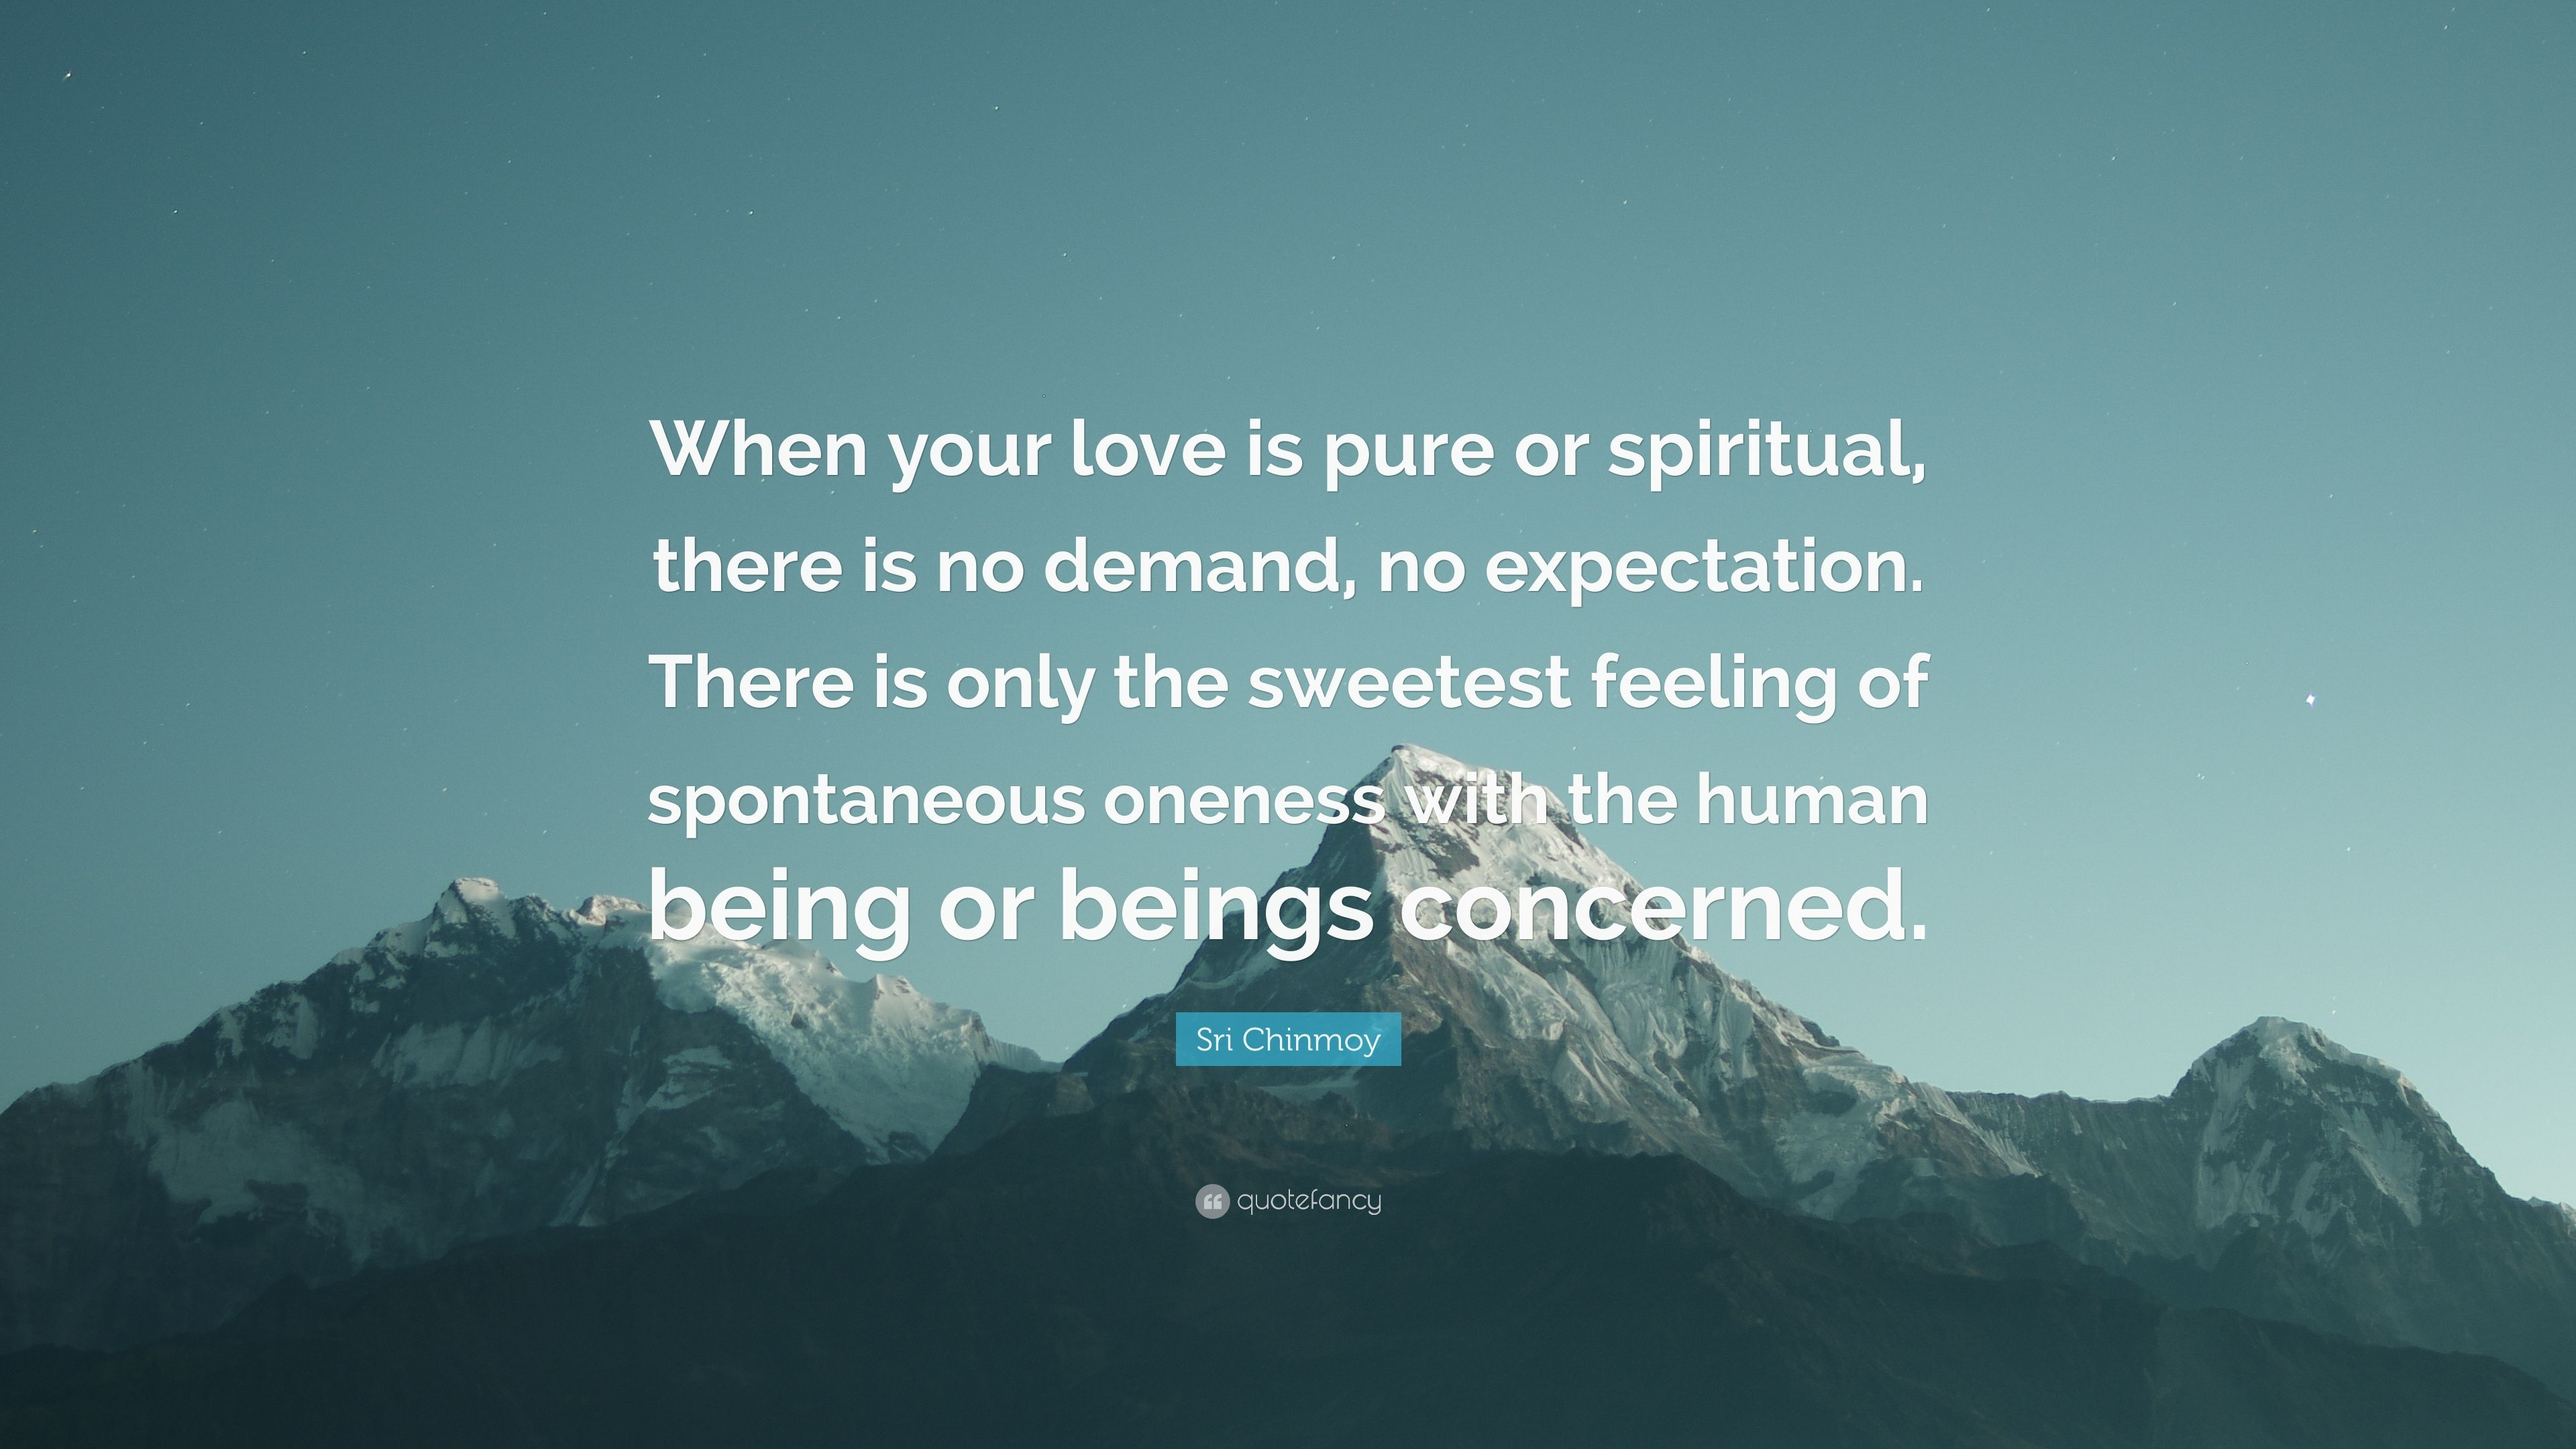 Sri Chinmoy Quote: U201cWhen Your Love Is Pure Or Spiritual, There Is No